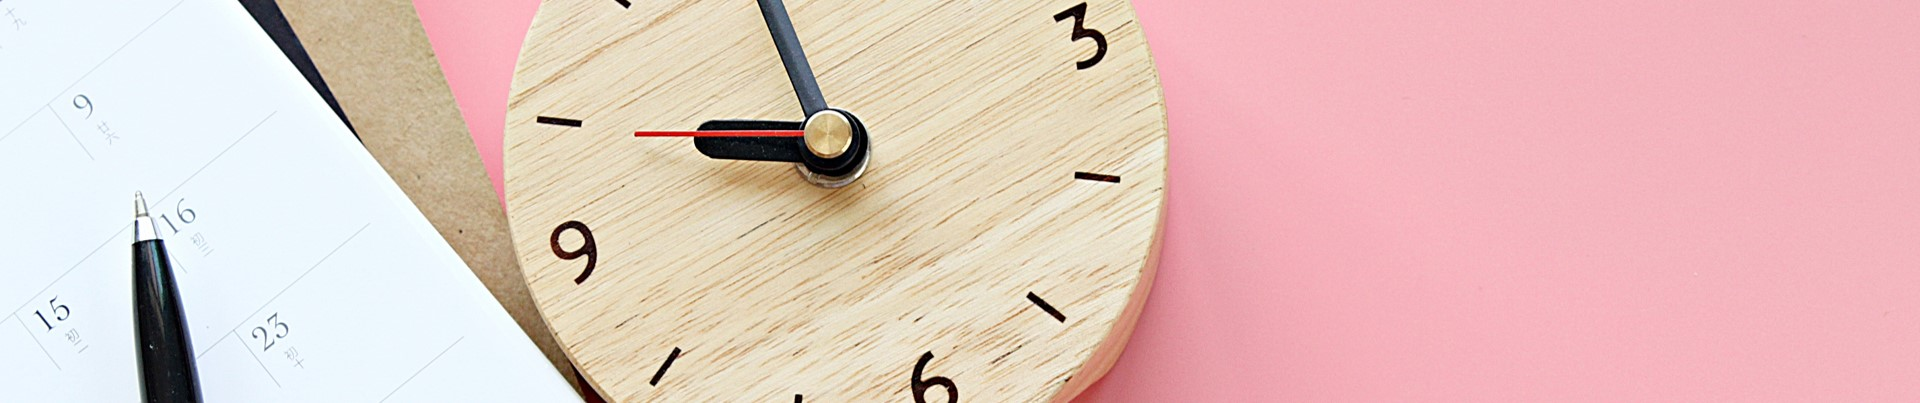 Photo of a calendar and wooden clock on a pink background